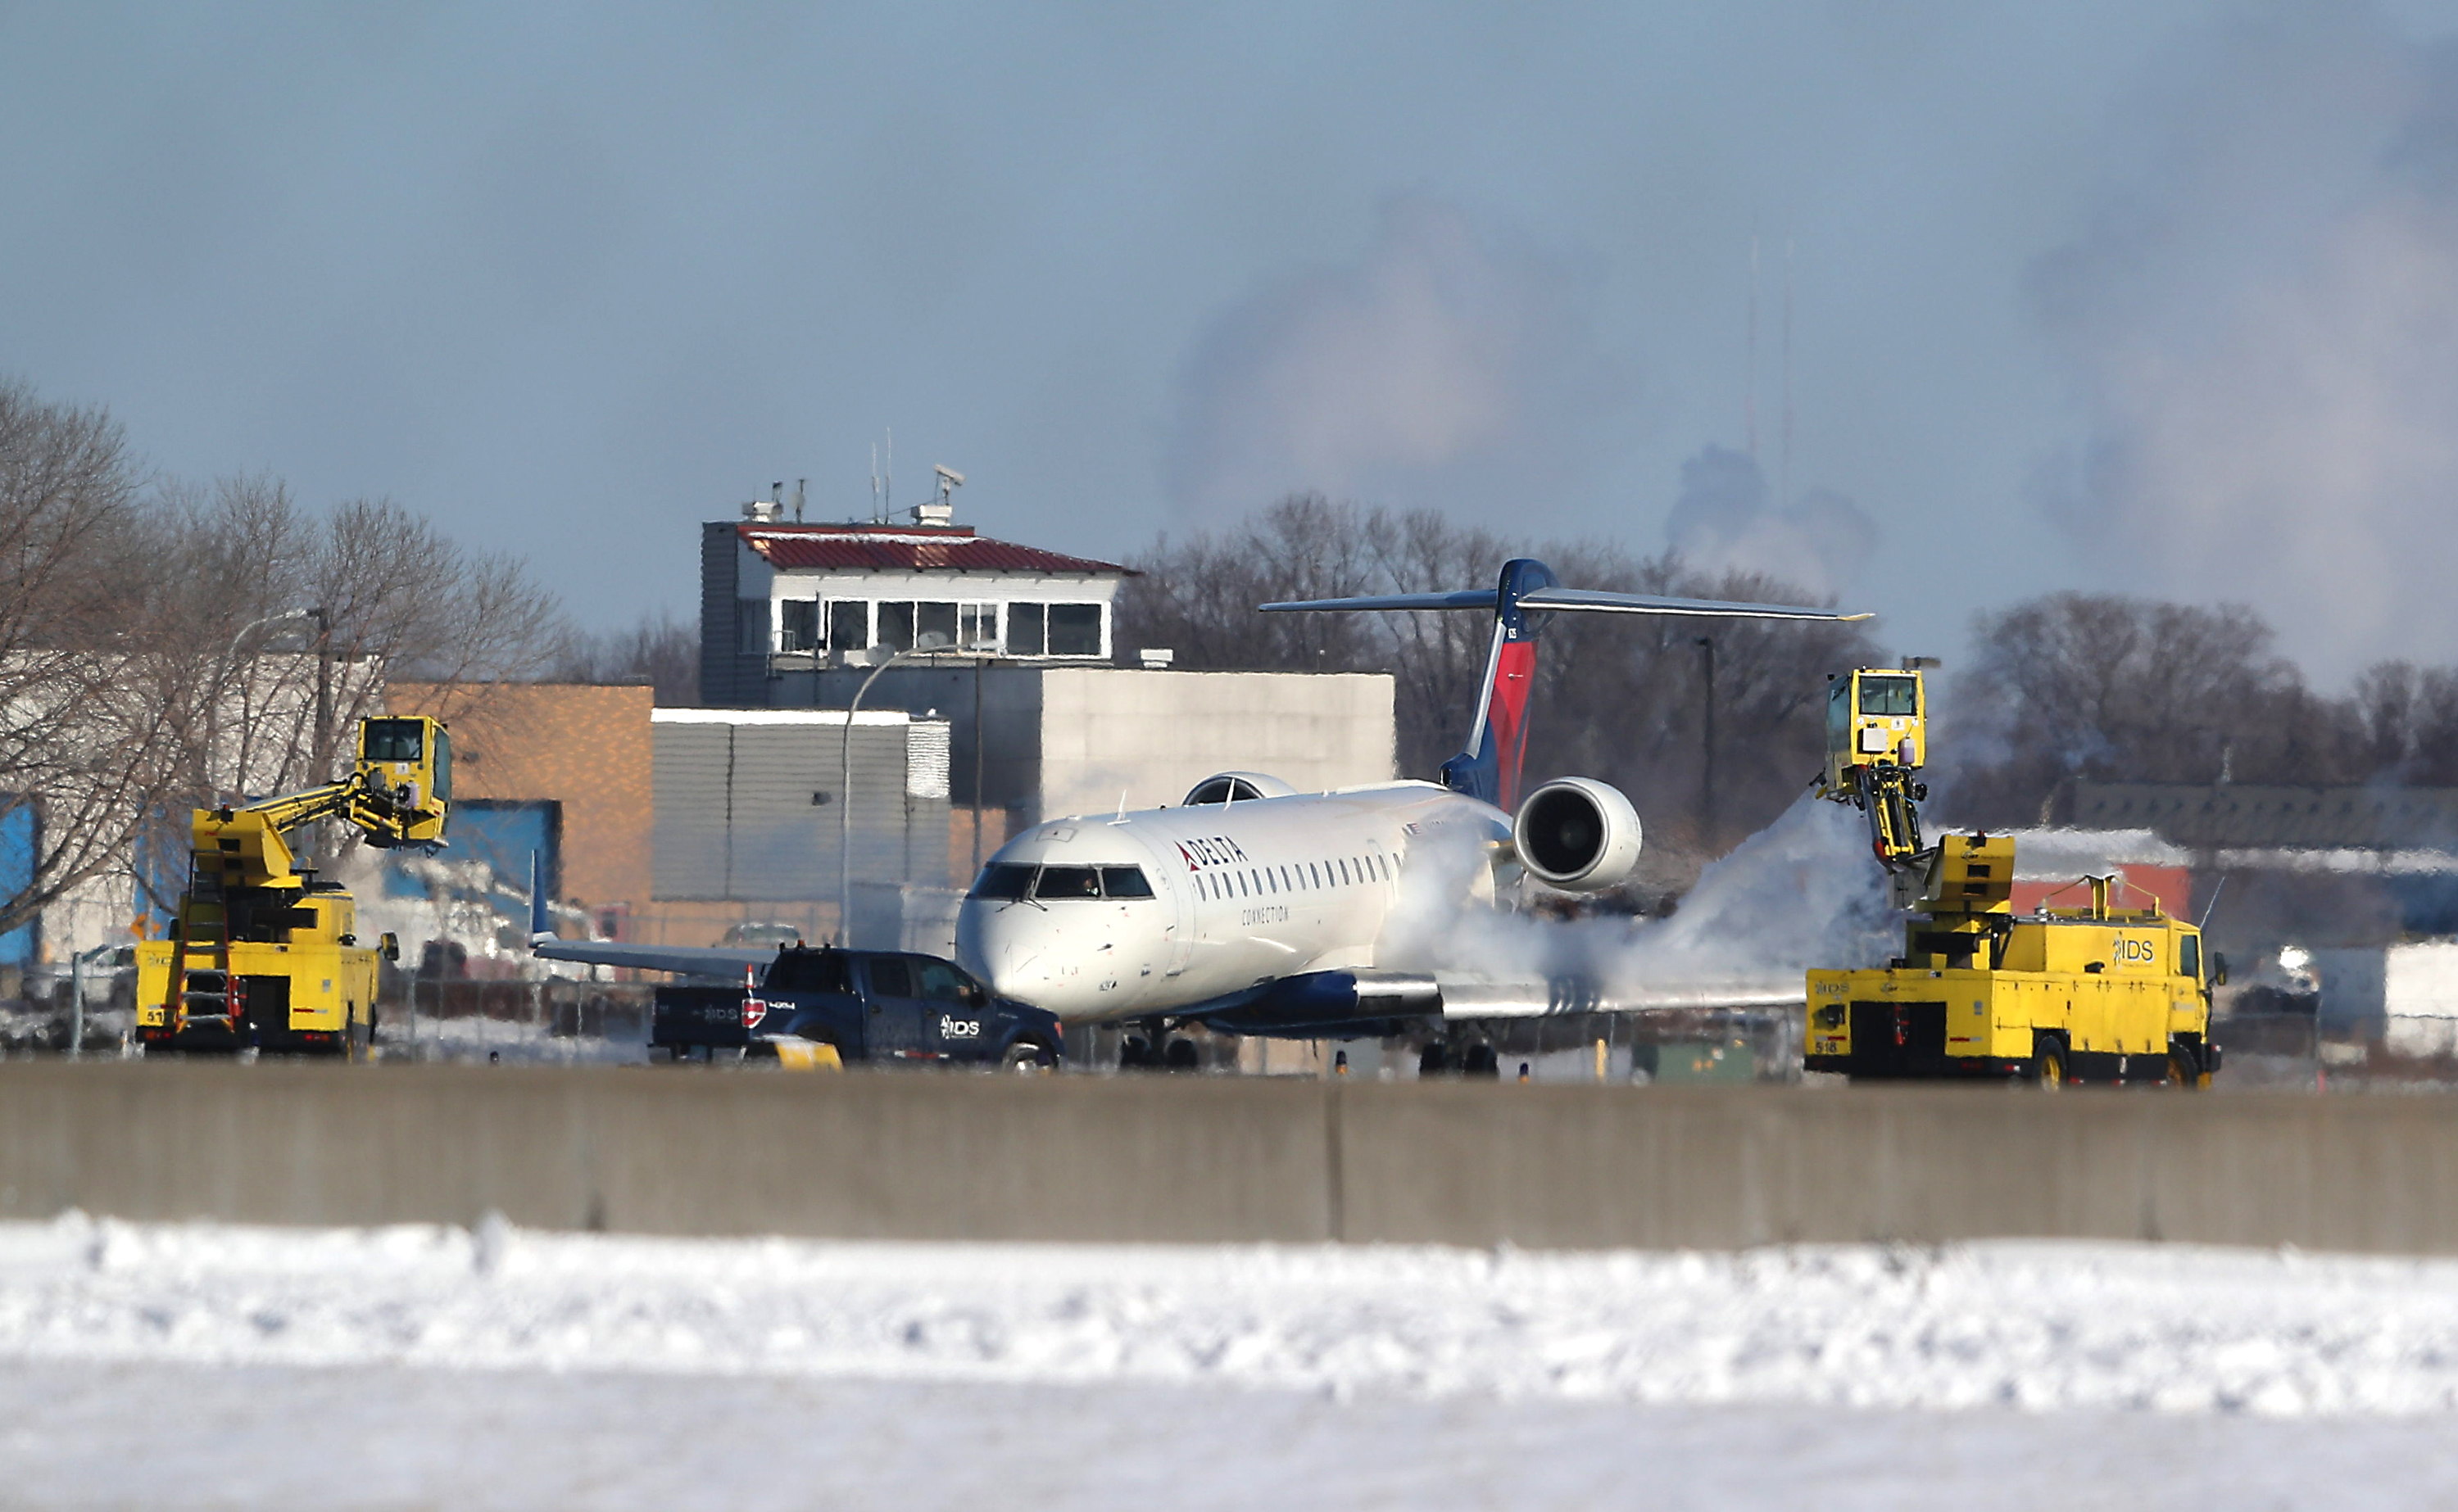 Minneapolis/St. Paul International Airport grounds crews deice an airplane prior to takeoff on Wednesday in Bloomington, Minnesota.